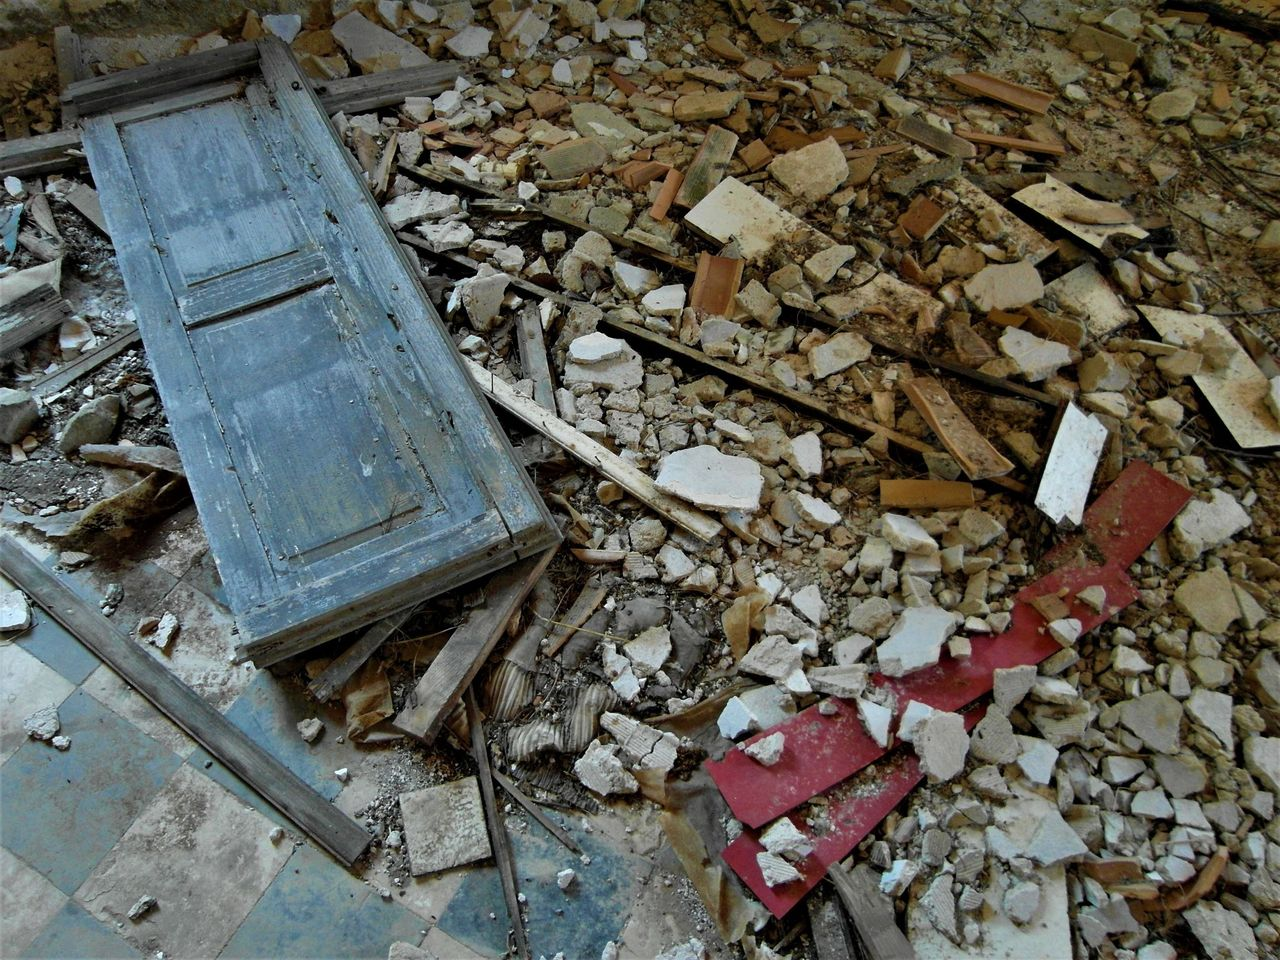 Debris of the past, fragments of History, scattered on the floor